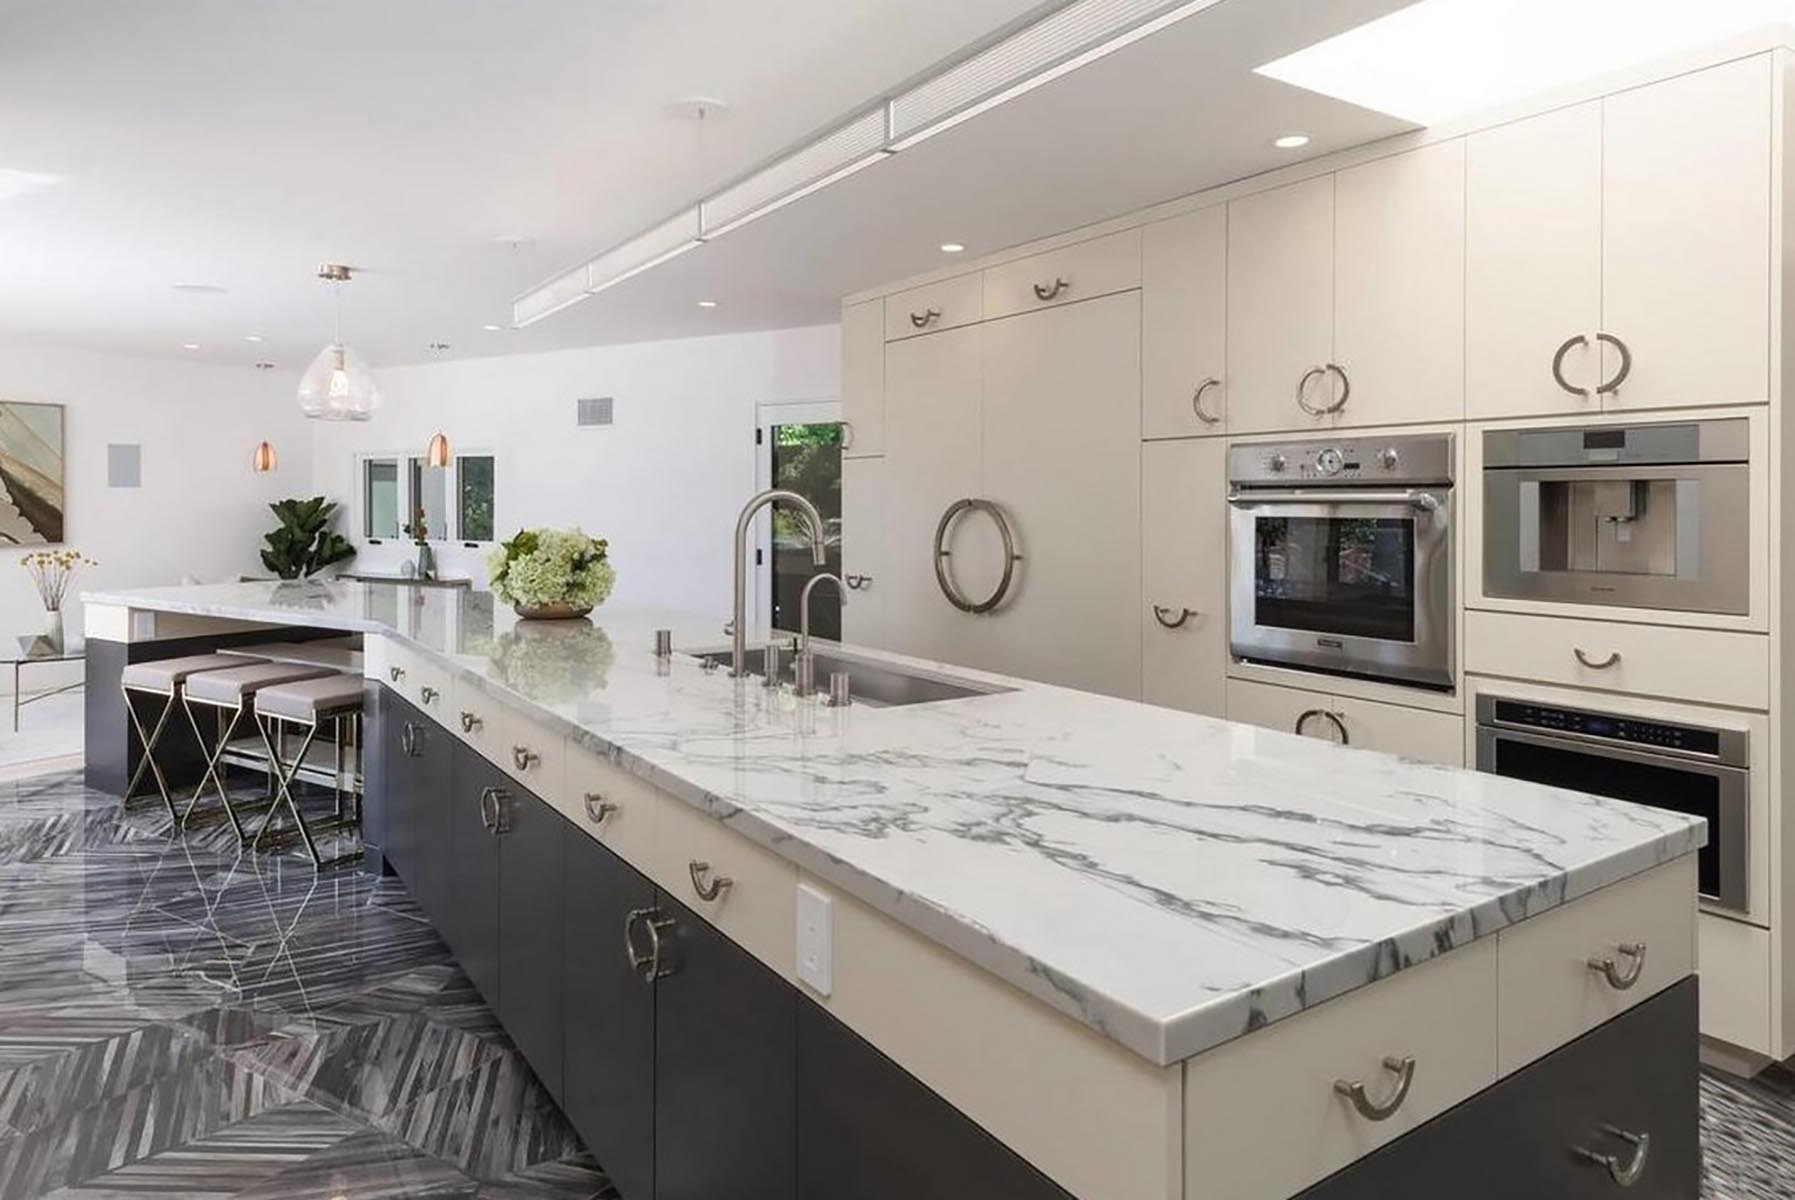 Residential architect Los Angeles home renovation kitchen 2